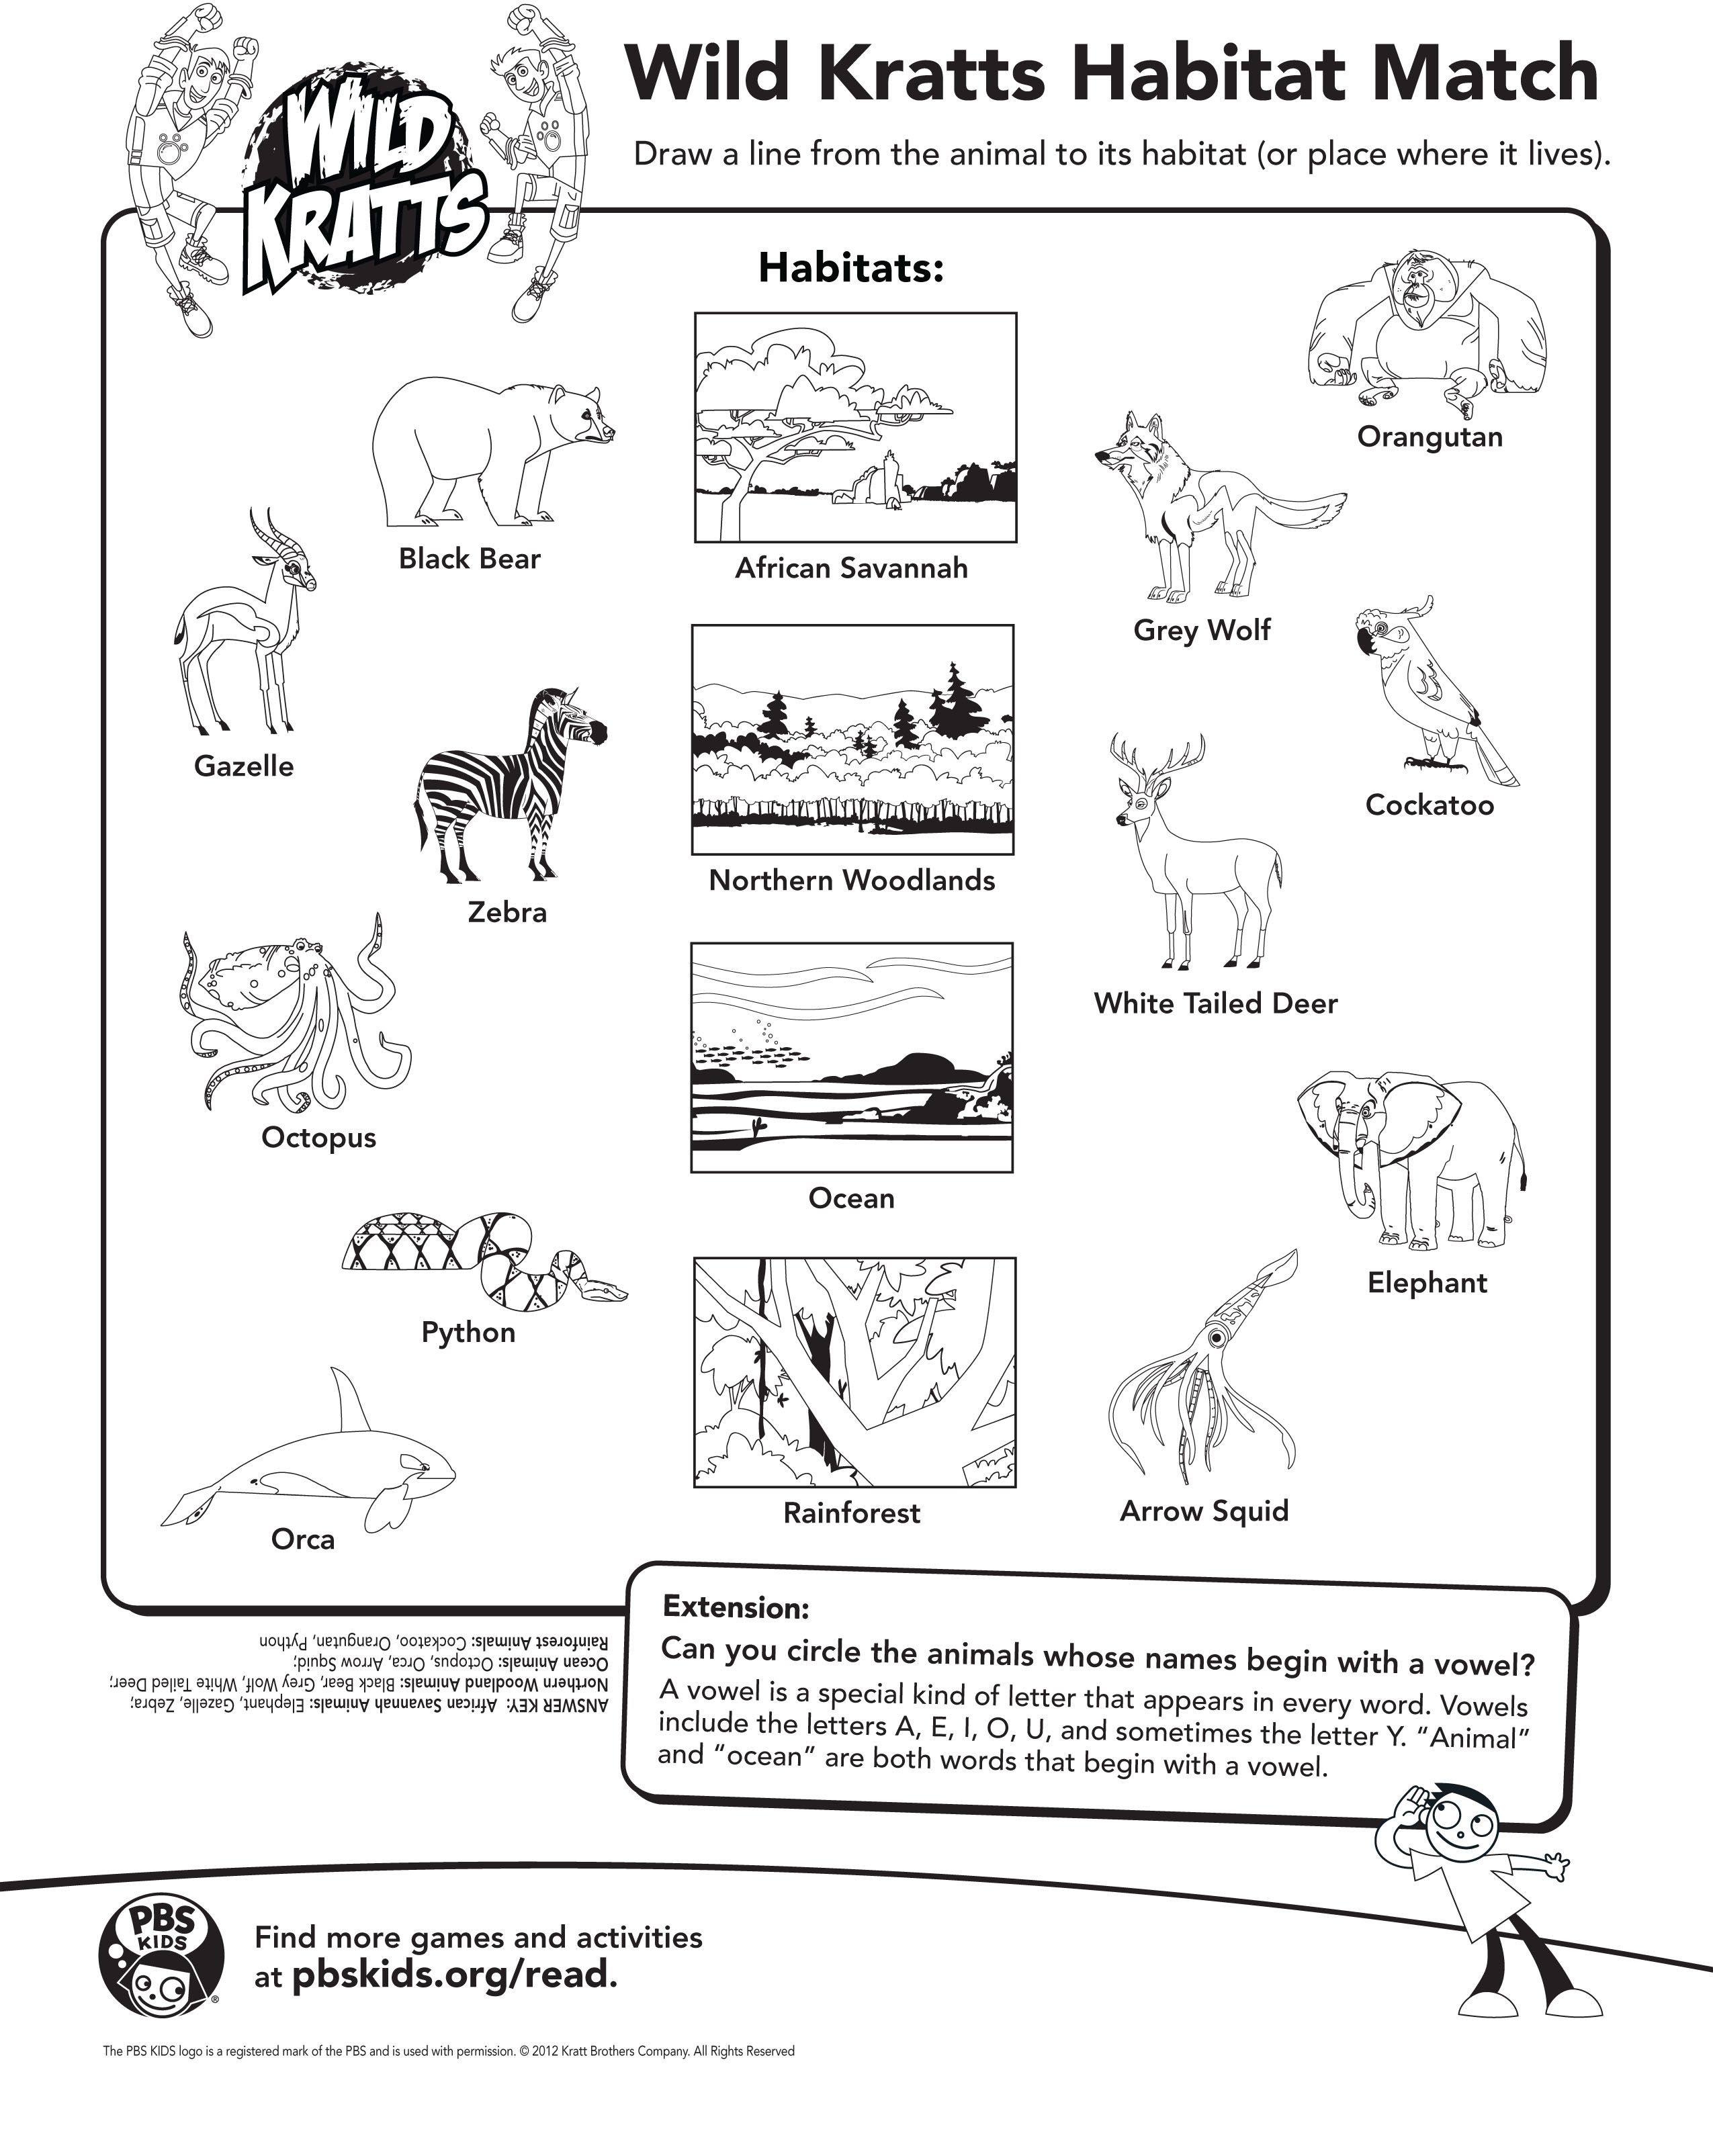 Draw A Line From The Animal To It S Habitat Wild Kratts